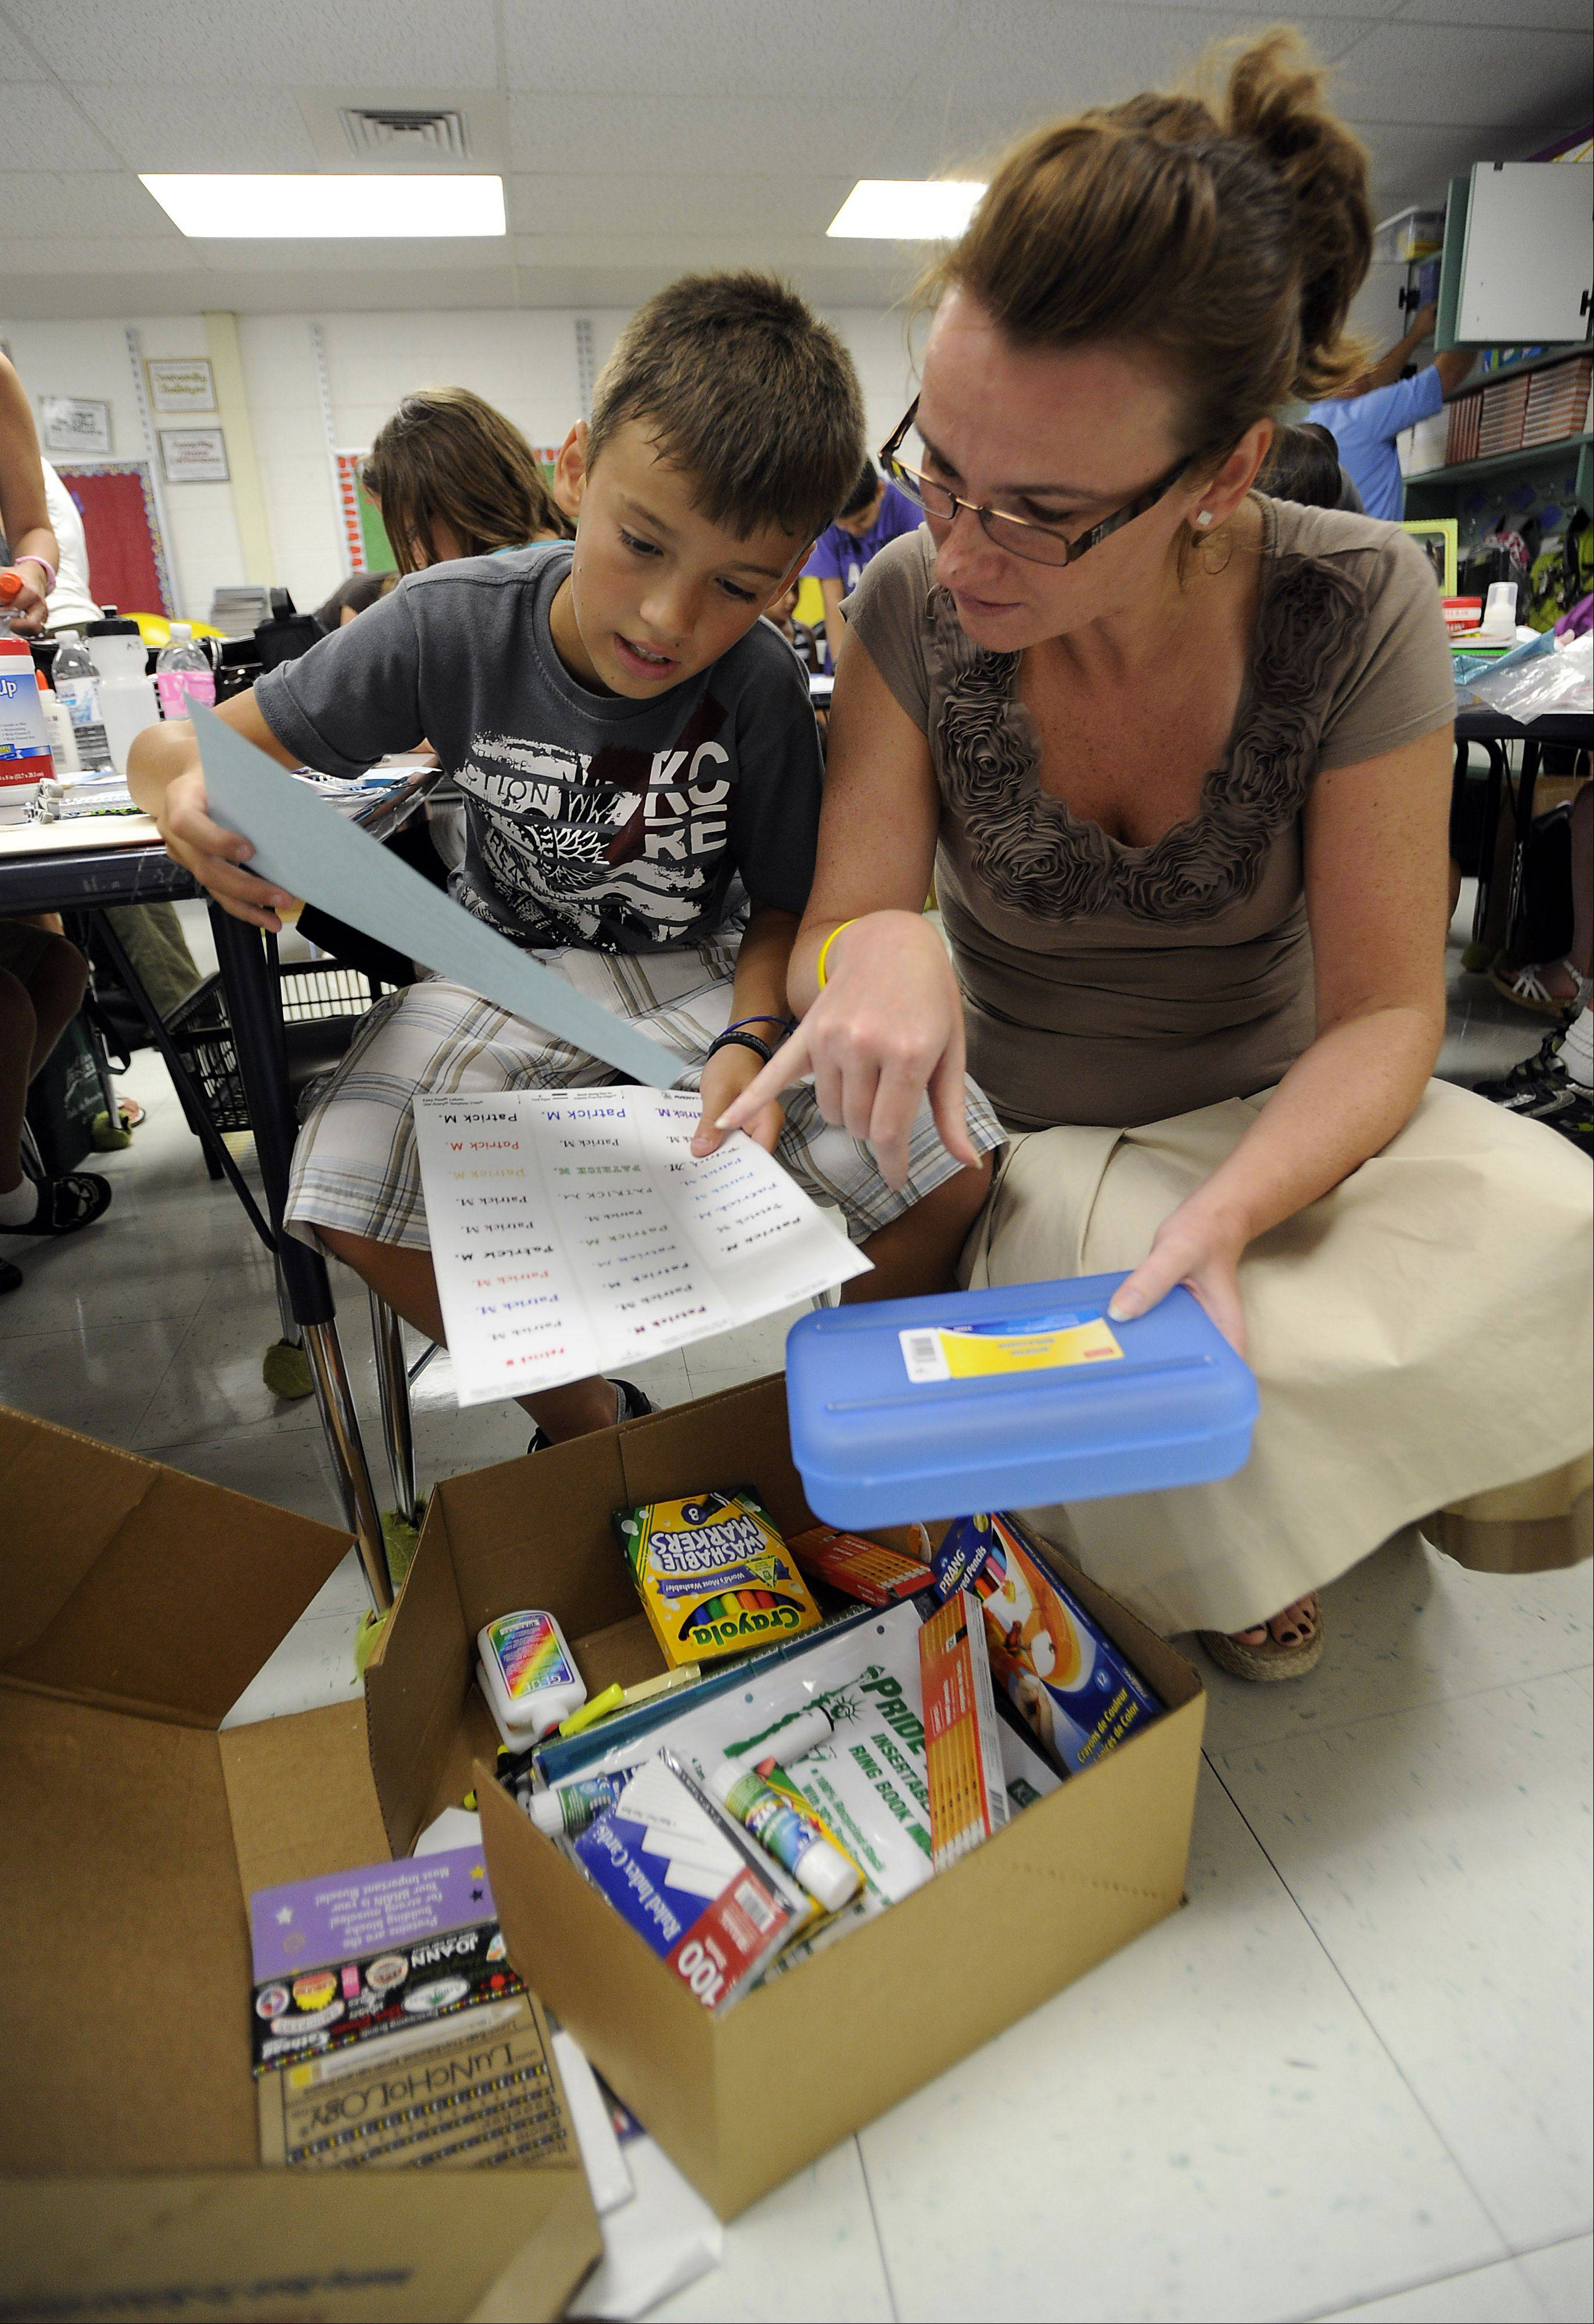 Ewa and her son Patrick Mack, 11, of Mount Prospect go over school supplies in his classroom at the Ridge Family Center for Learning in Elk Grove Village as part of the open house on Wednesday.